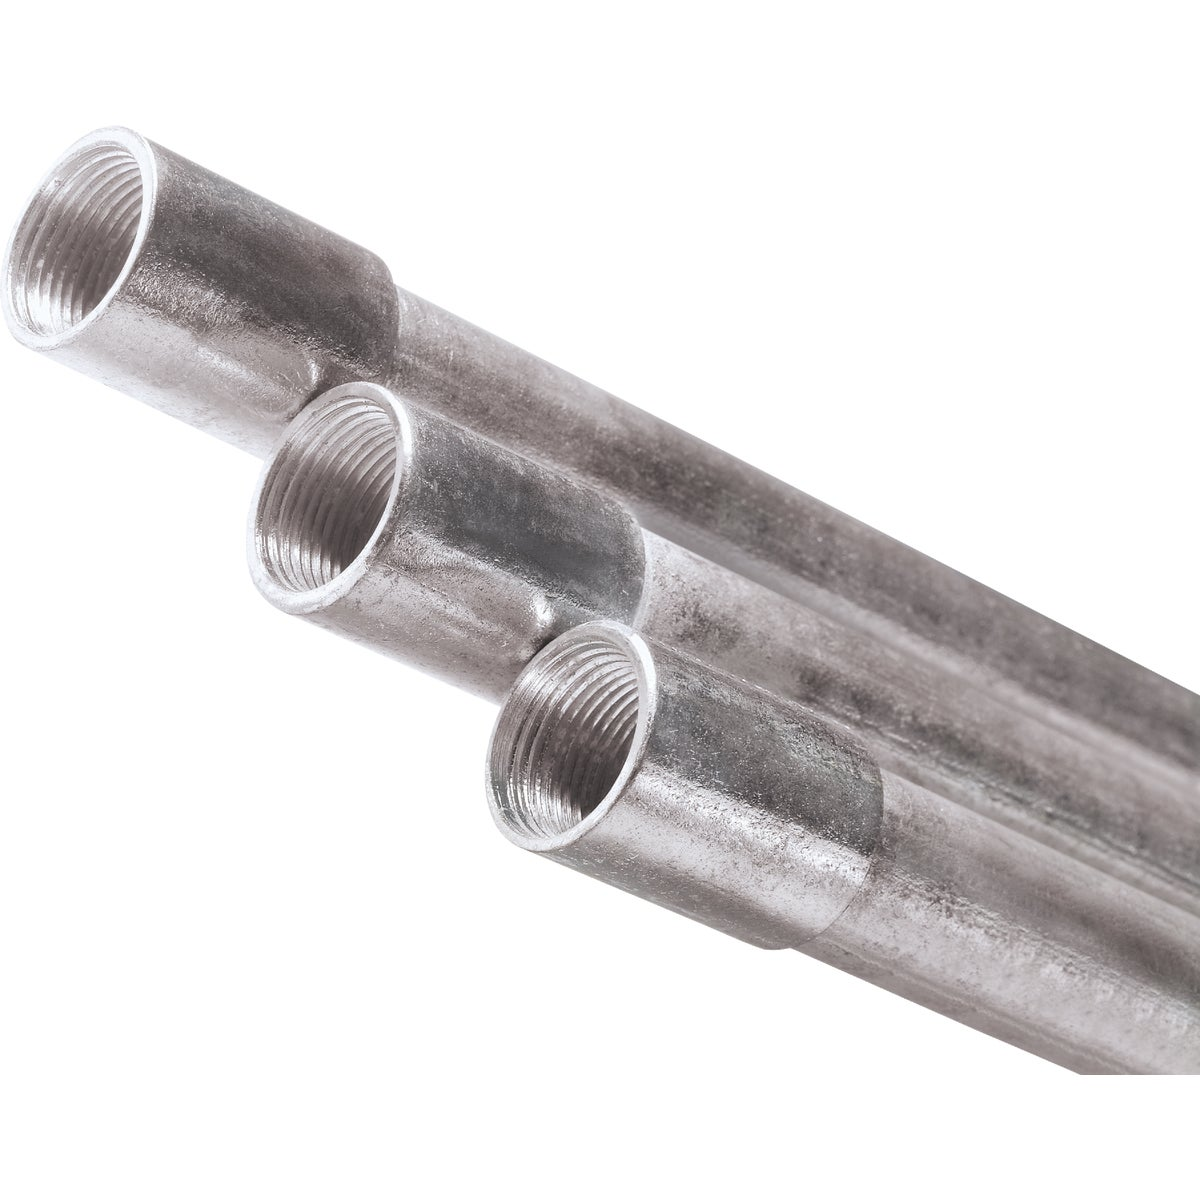 "1-1/4"" RIGID 10' CONDUIT"